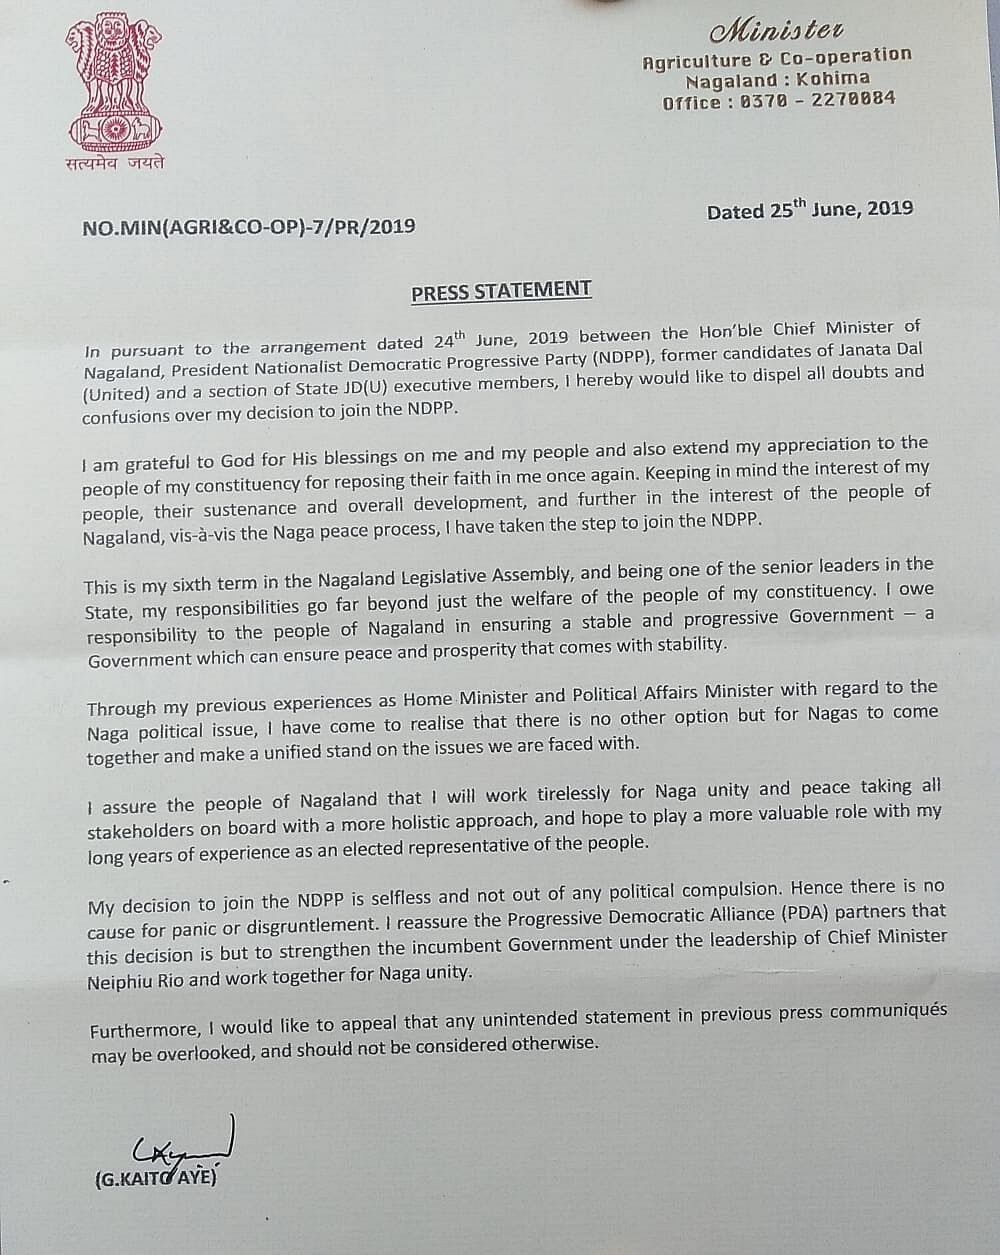 A press statement  issued by Nagaland minister G Kaito Aye